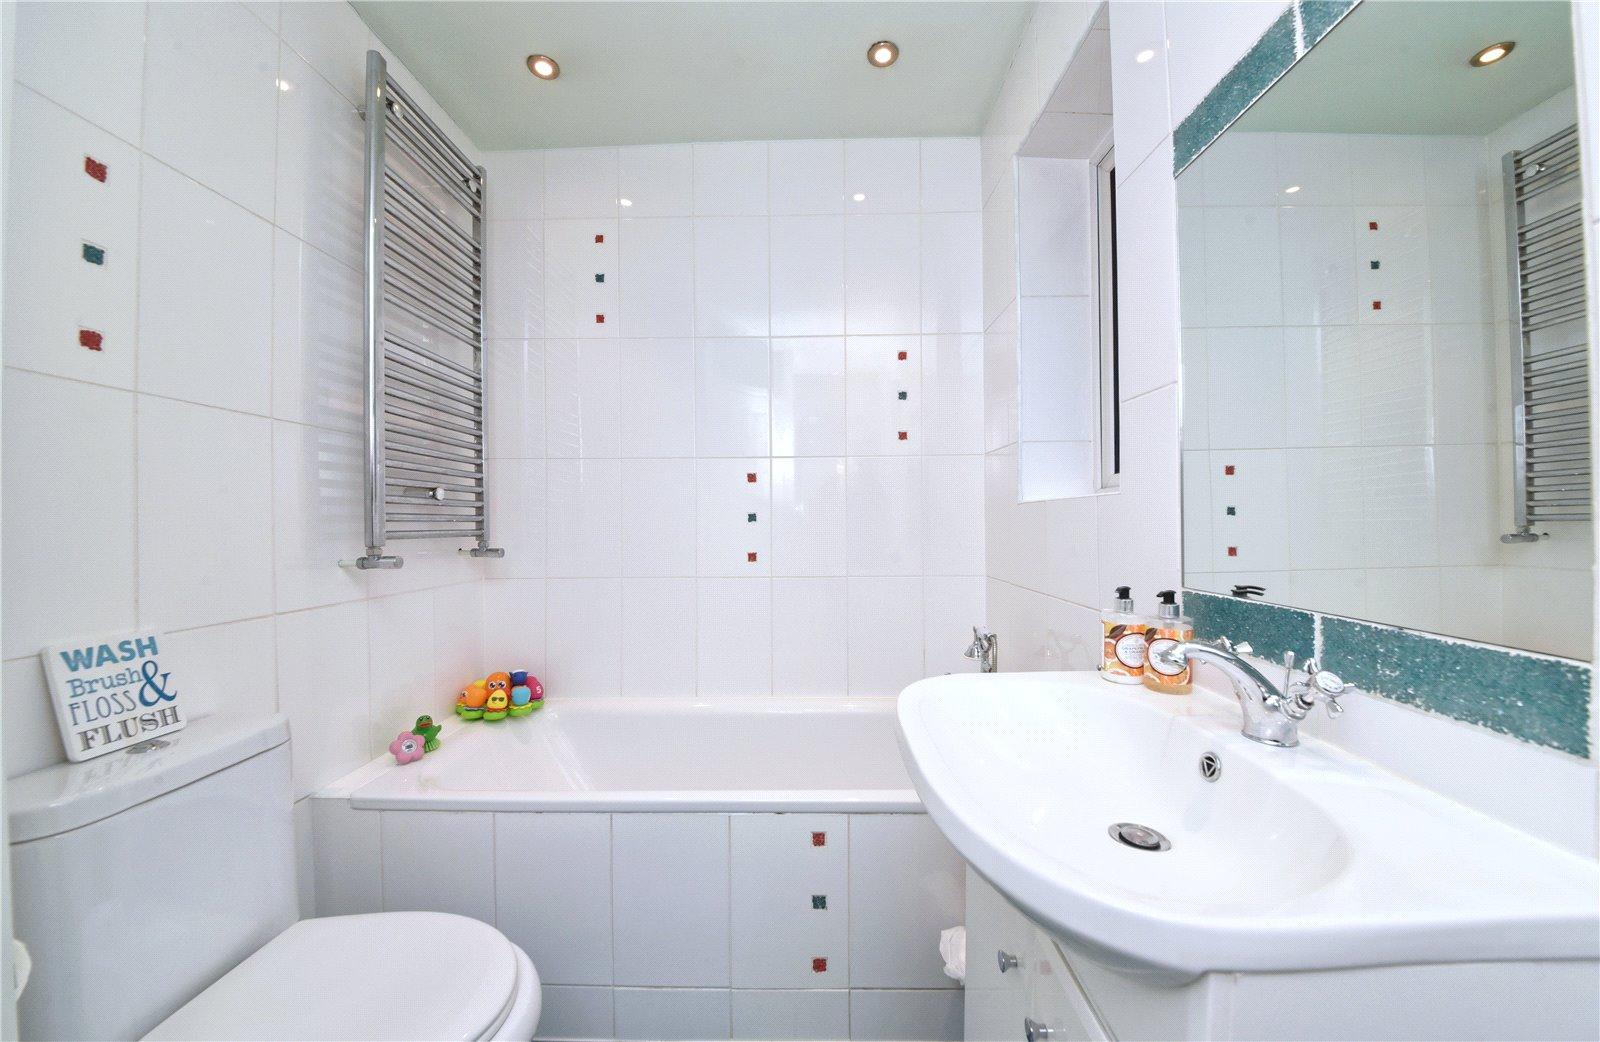 3 bed house for sale in Edgware, HA8 8XT  - Property Image 3